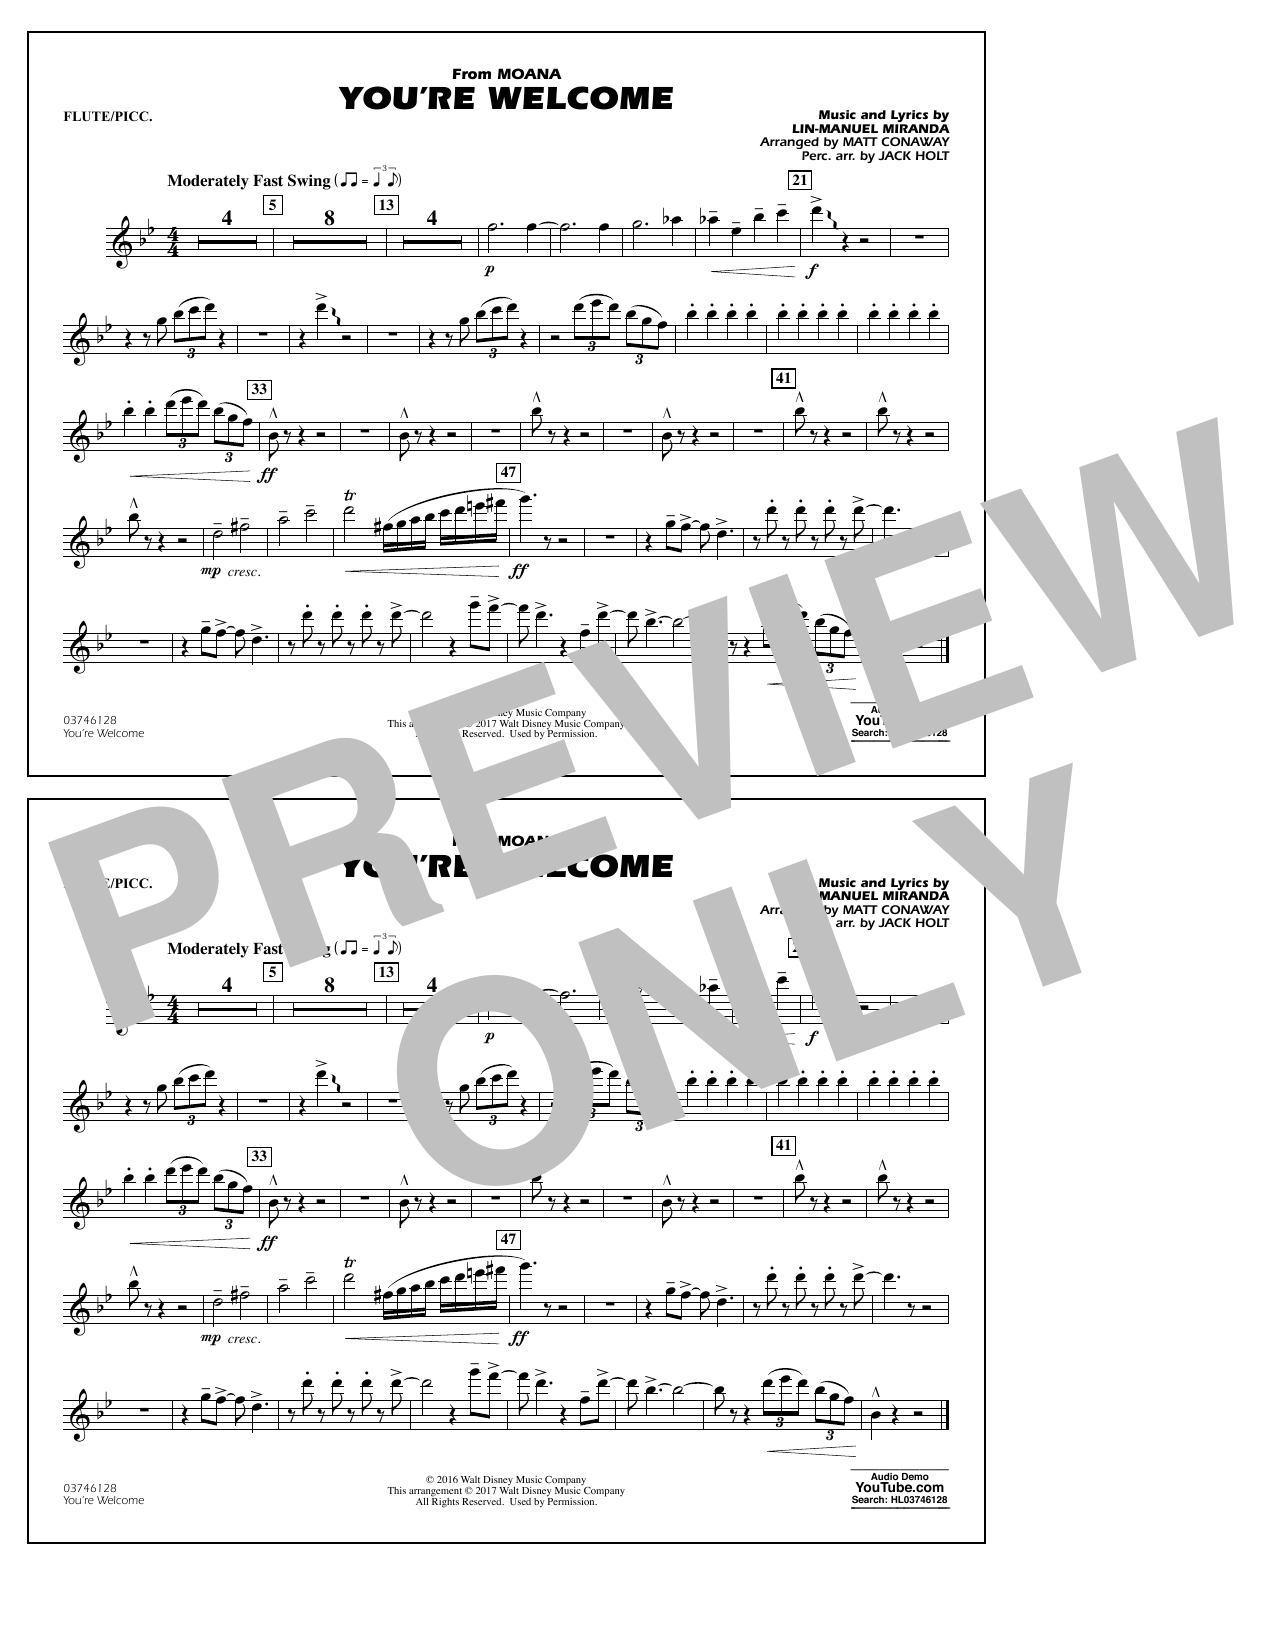 You're Welcome (from Moana) - Flute/Piccolo Sheet Music